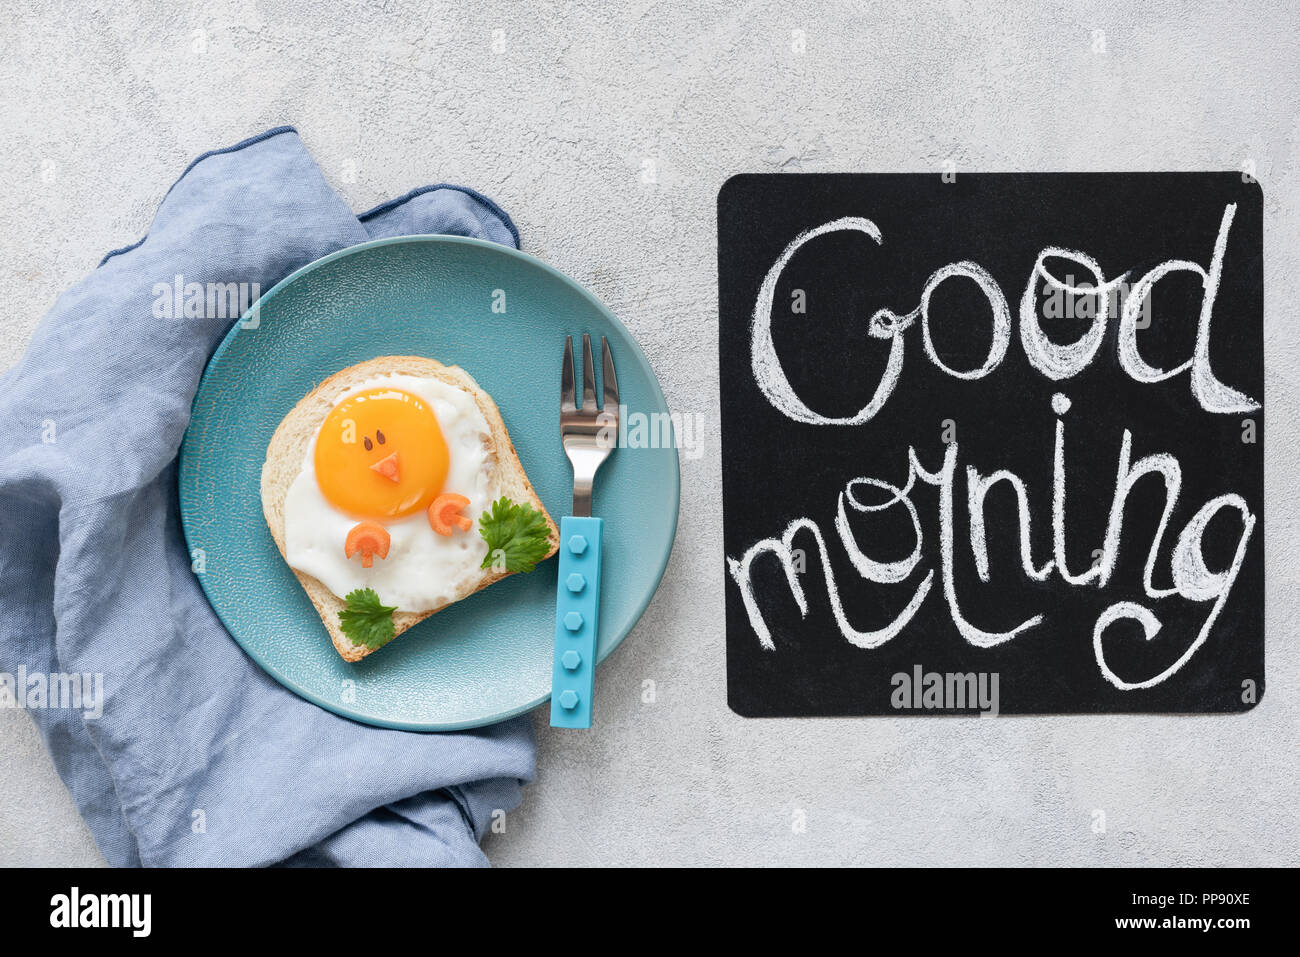 Breakfast food kids. Funny toast with egg and good morning text on a chalkboard. Top view - Stock Image